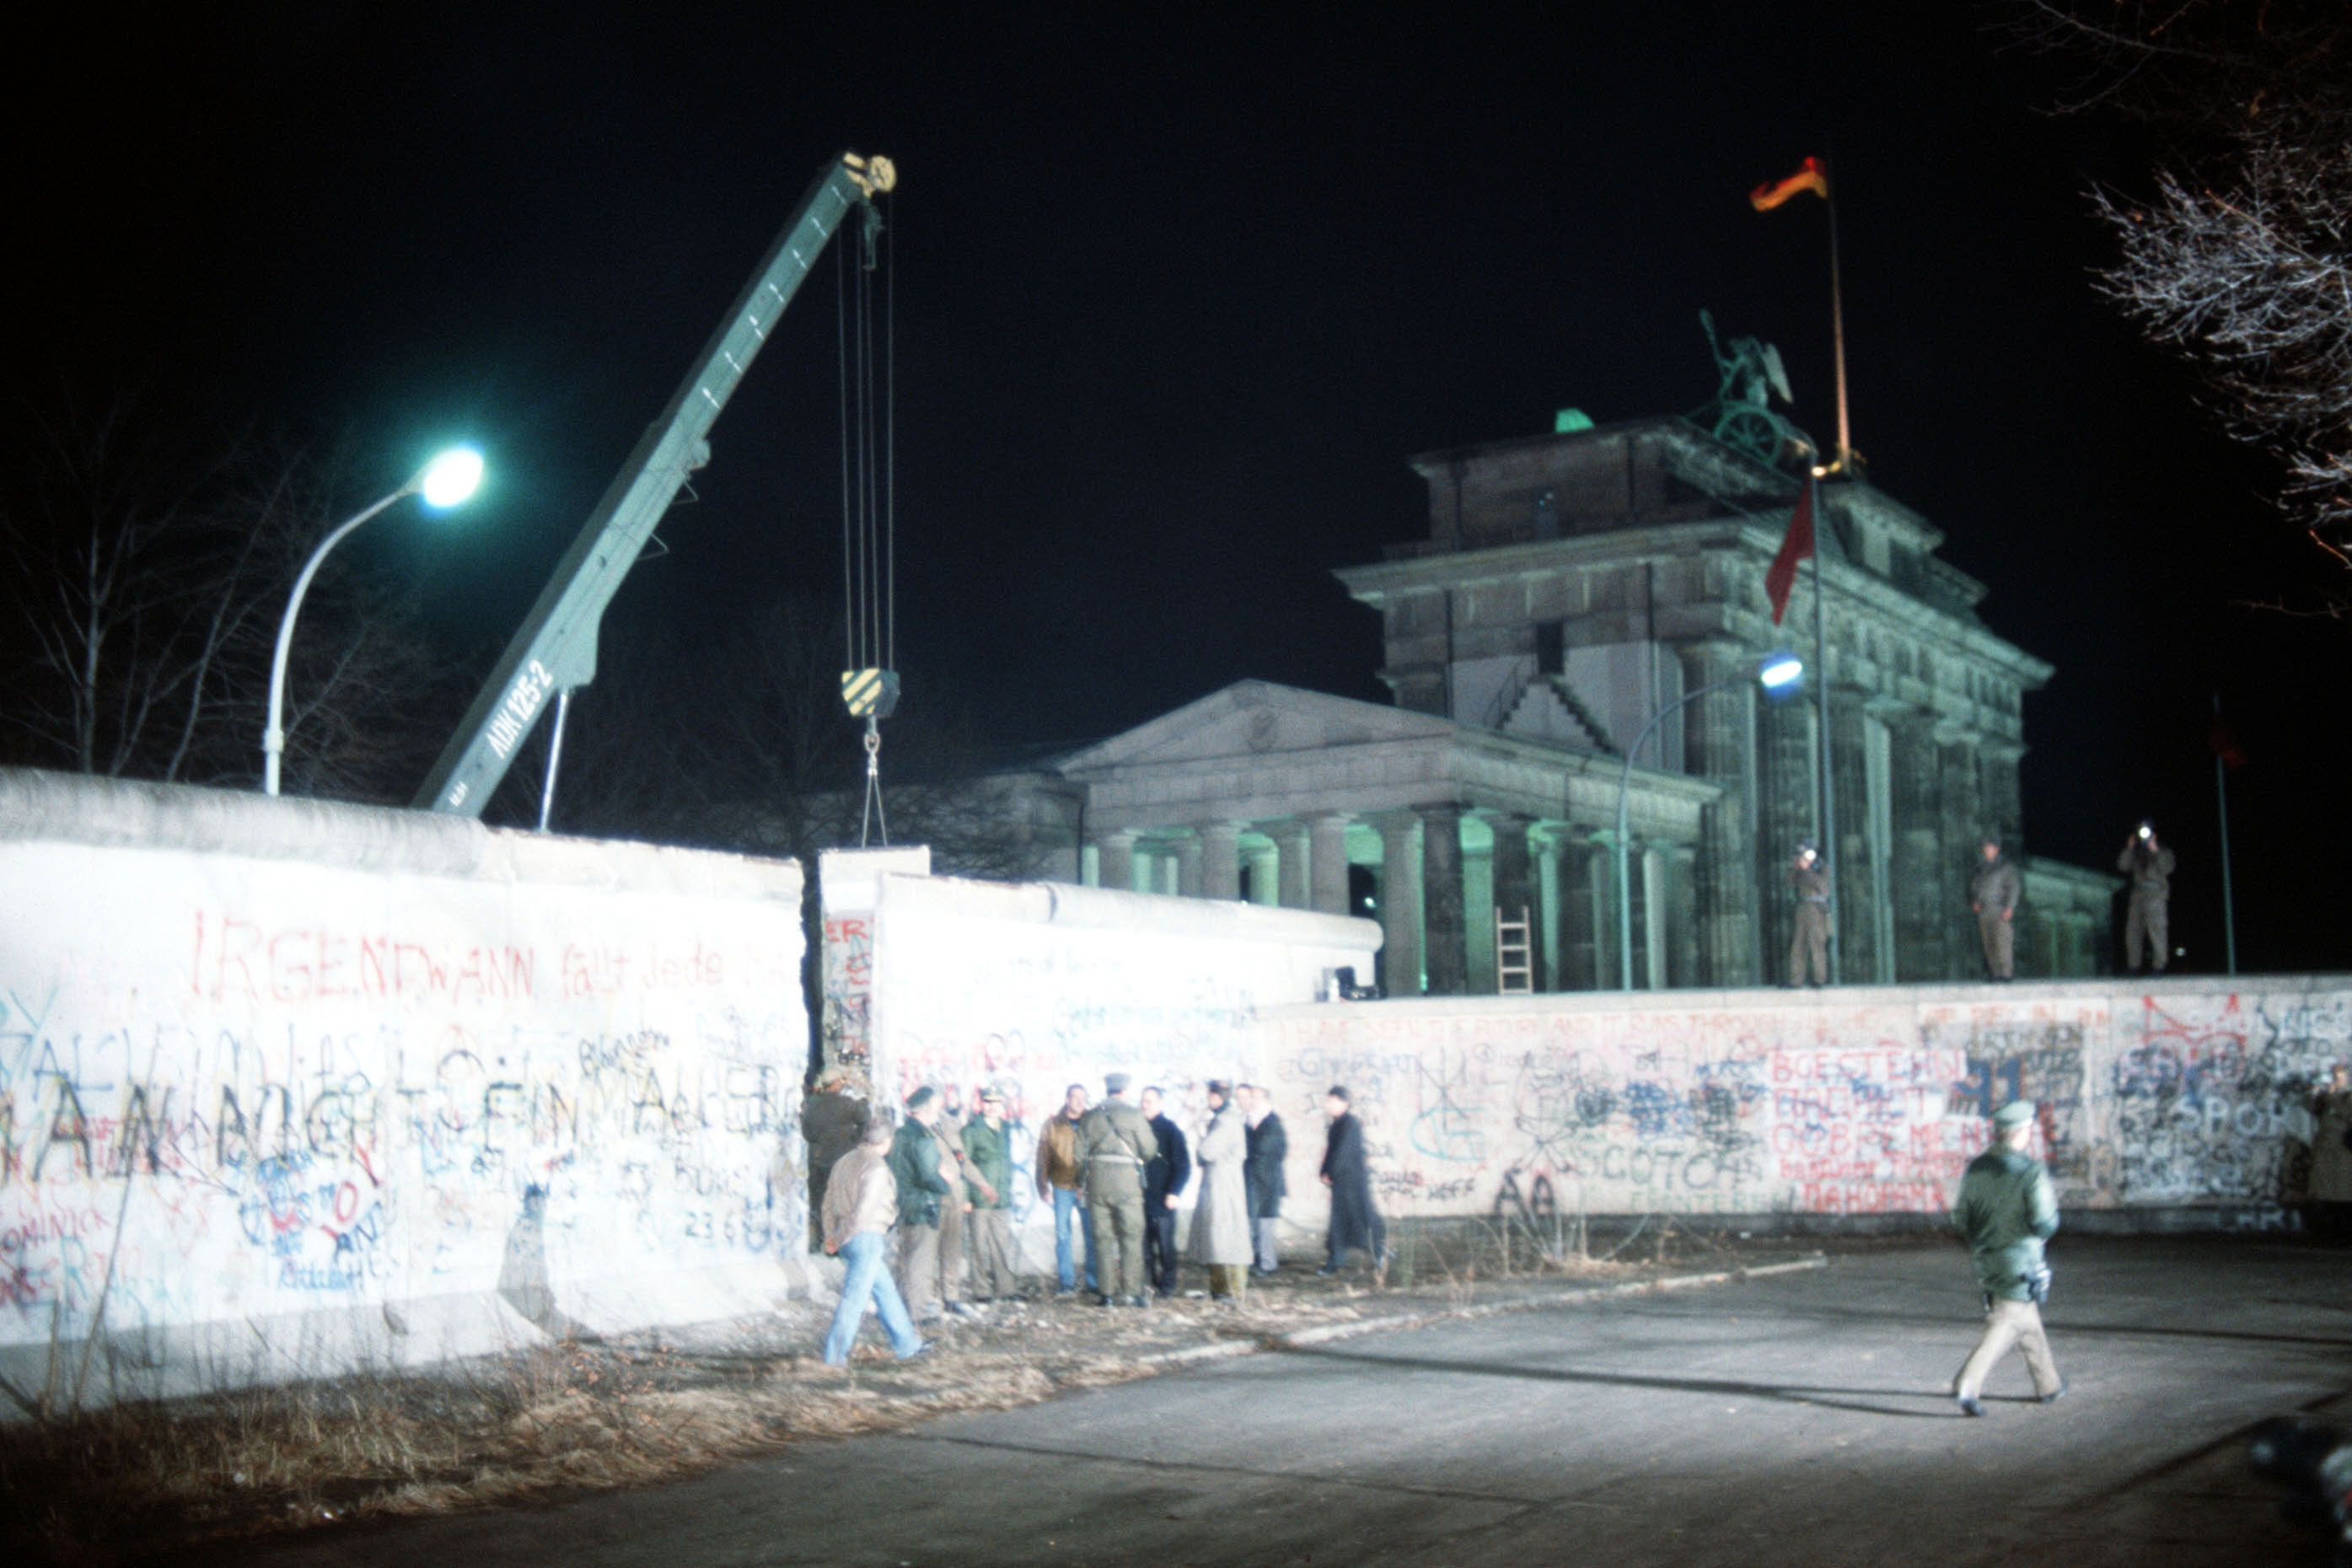 Crane removing a section of the Berlin Wall, December 21, 1989